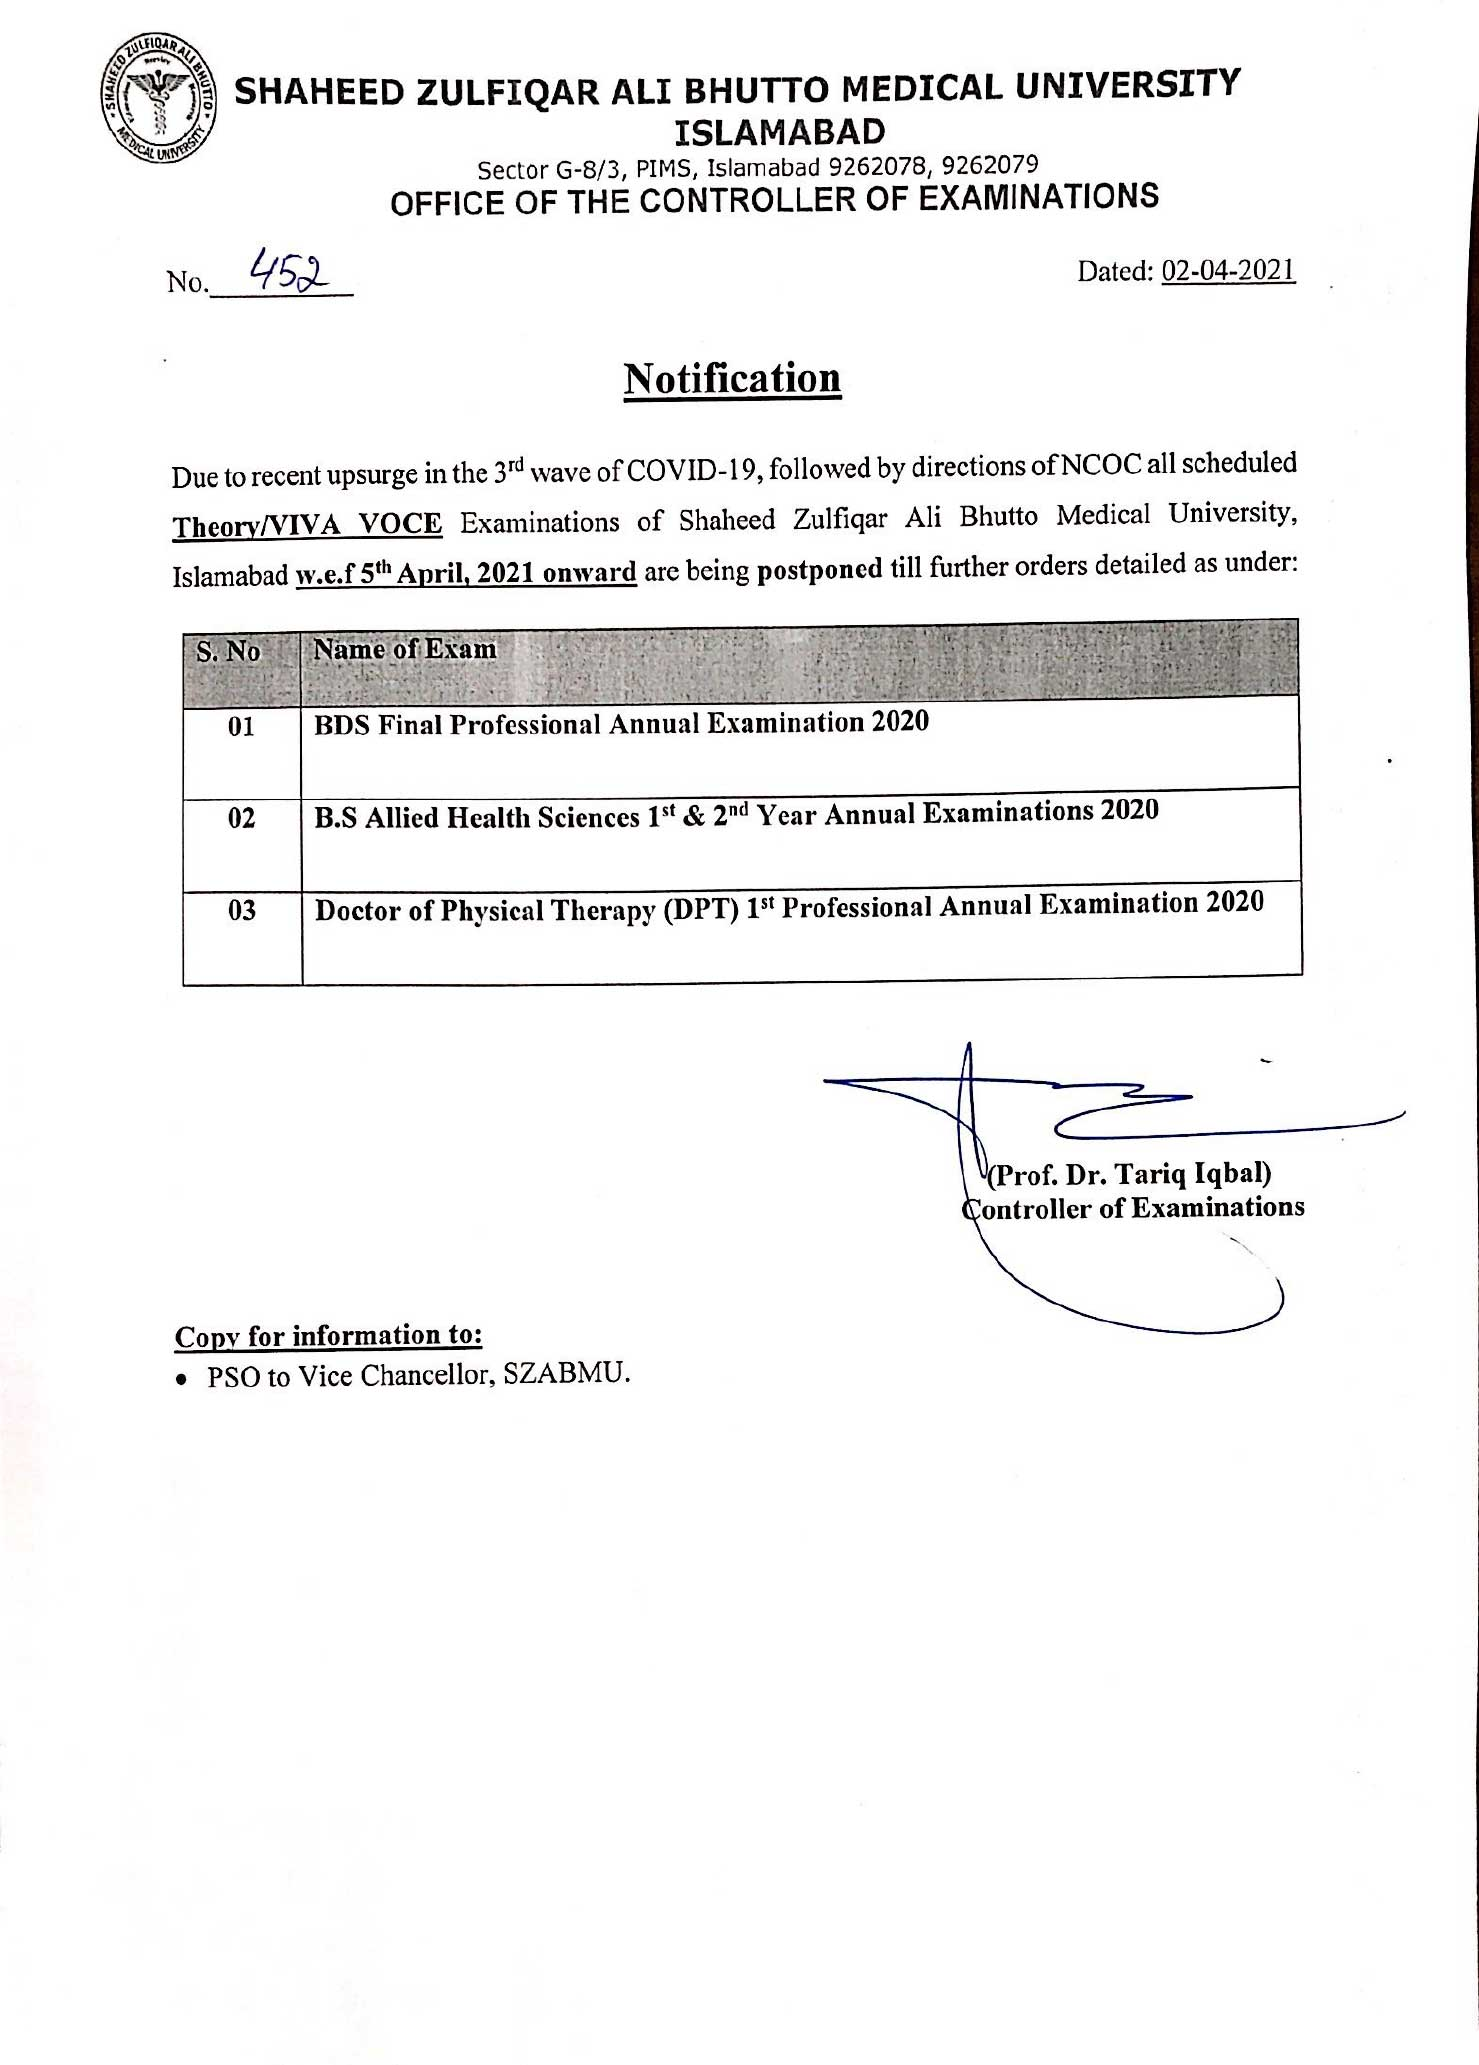 Notification - Postponement of BDS Final Professional, DPT 1st Professional, BS AHS 1st and 2nd Year Annual Examinations 2020